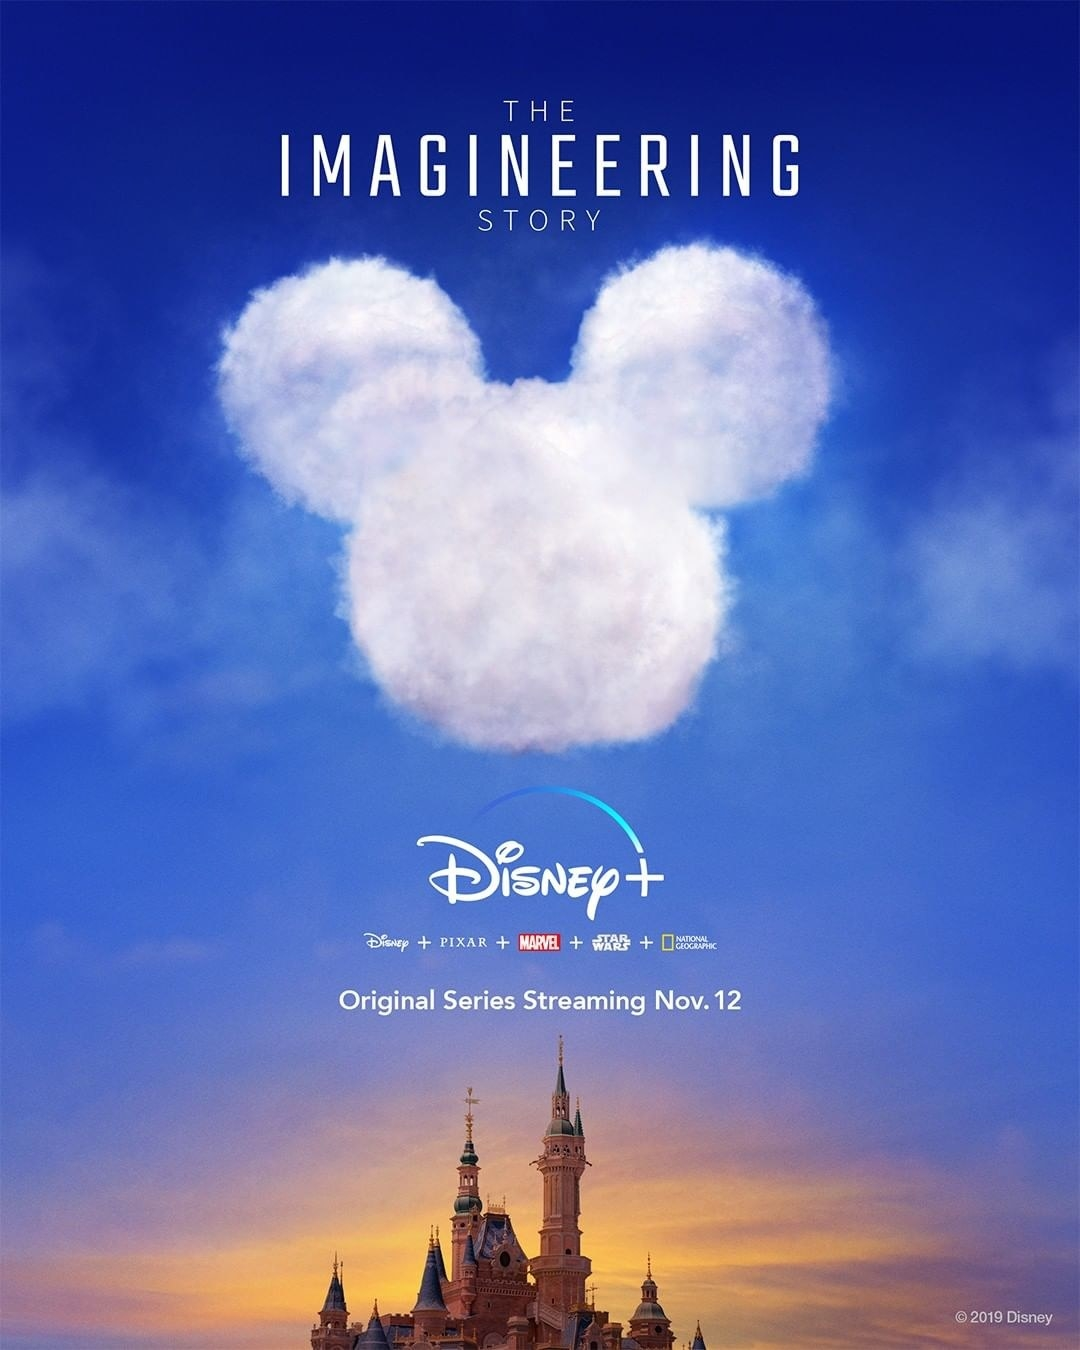 the poster for the imagineering story docu-series